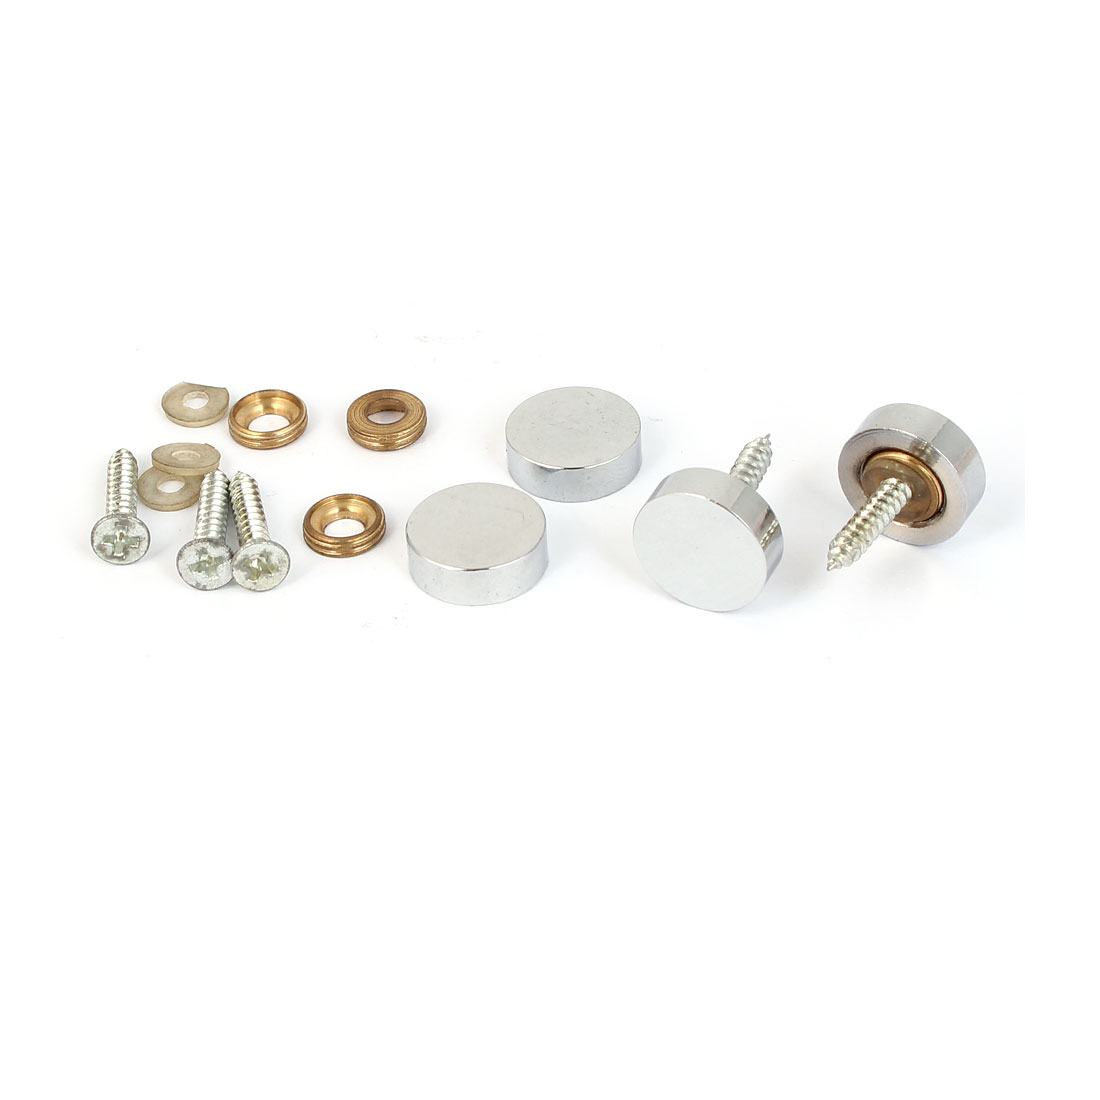 Tea Table Wardrobe Round Flat Metal Mirror Screw Cap Nail Silver Tone 4pcs